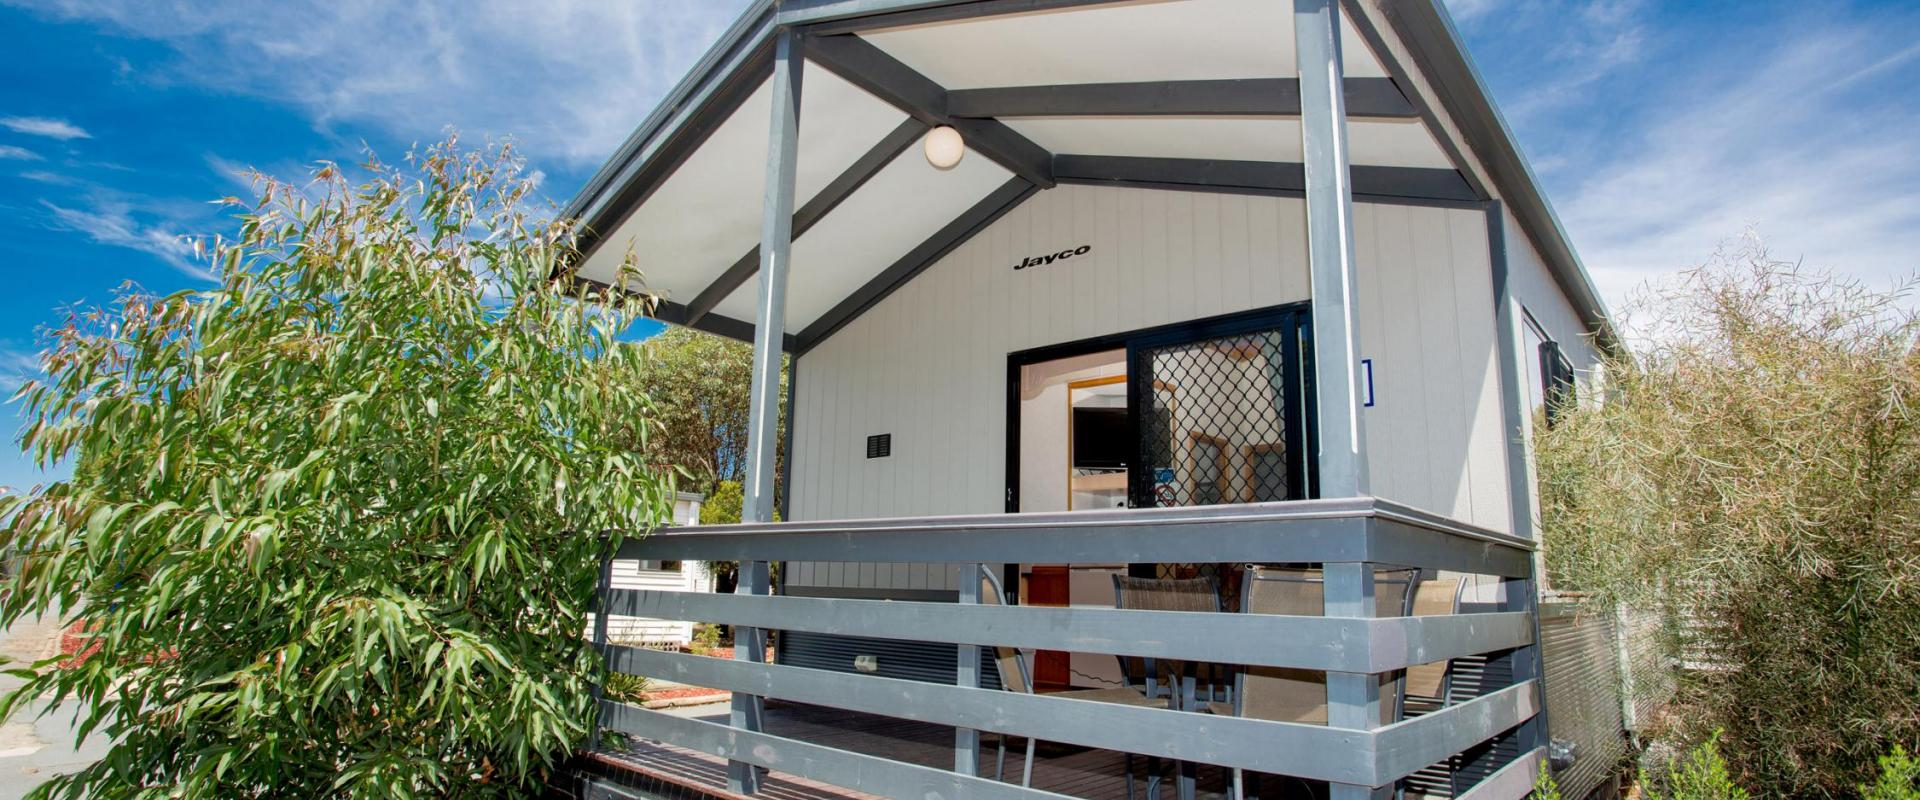 BIG4 Shepparton Park Lane Holiday Park - Family Cabin - Sleeps 6